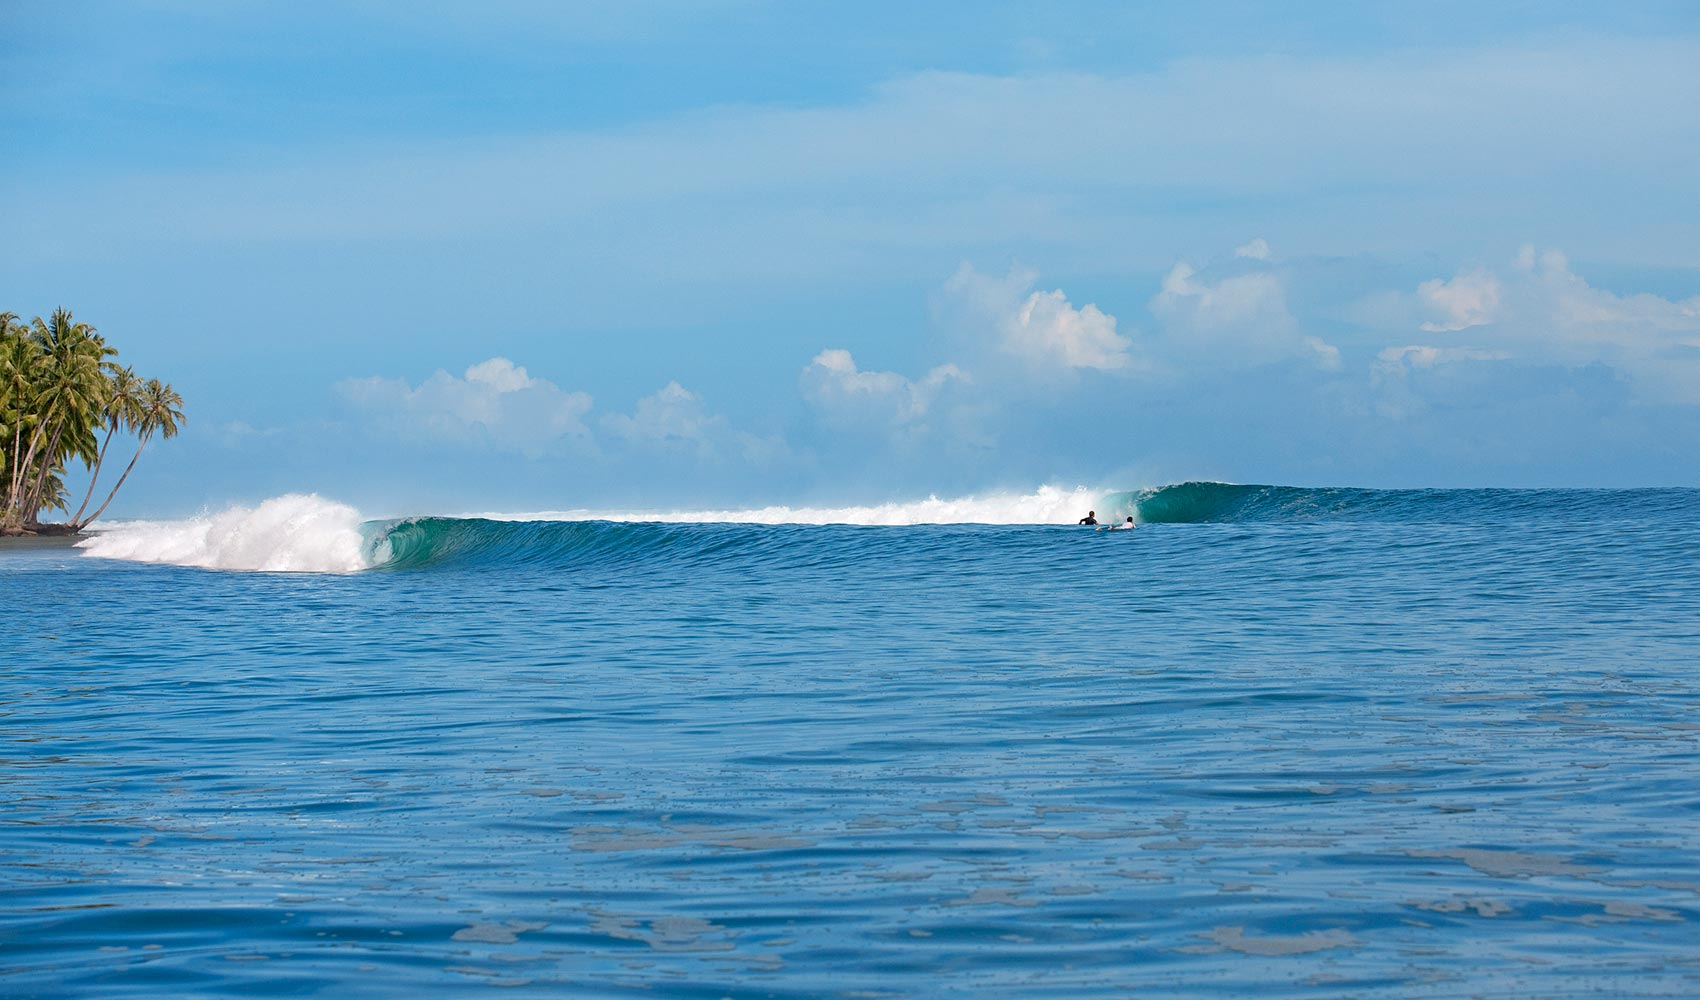 Telo_Island_Lodge_Surf_Indonesia_perfect_left.jpg